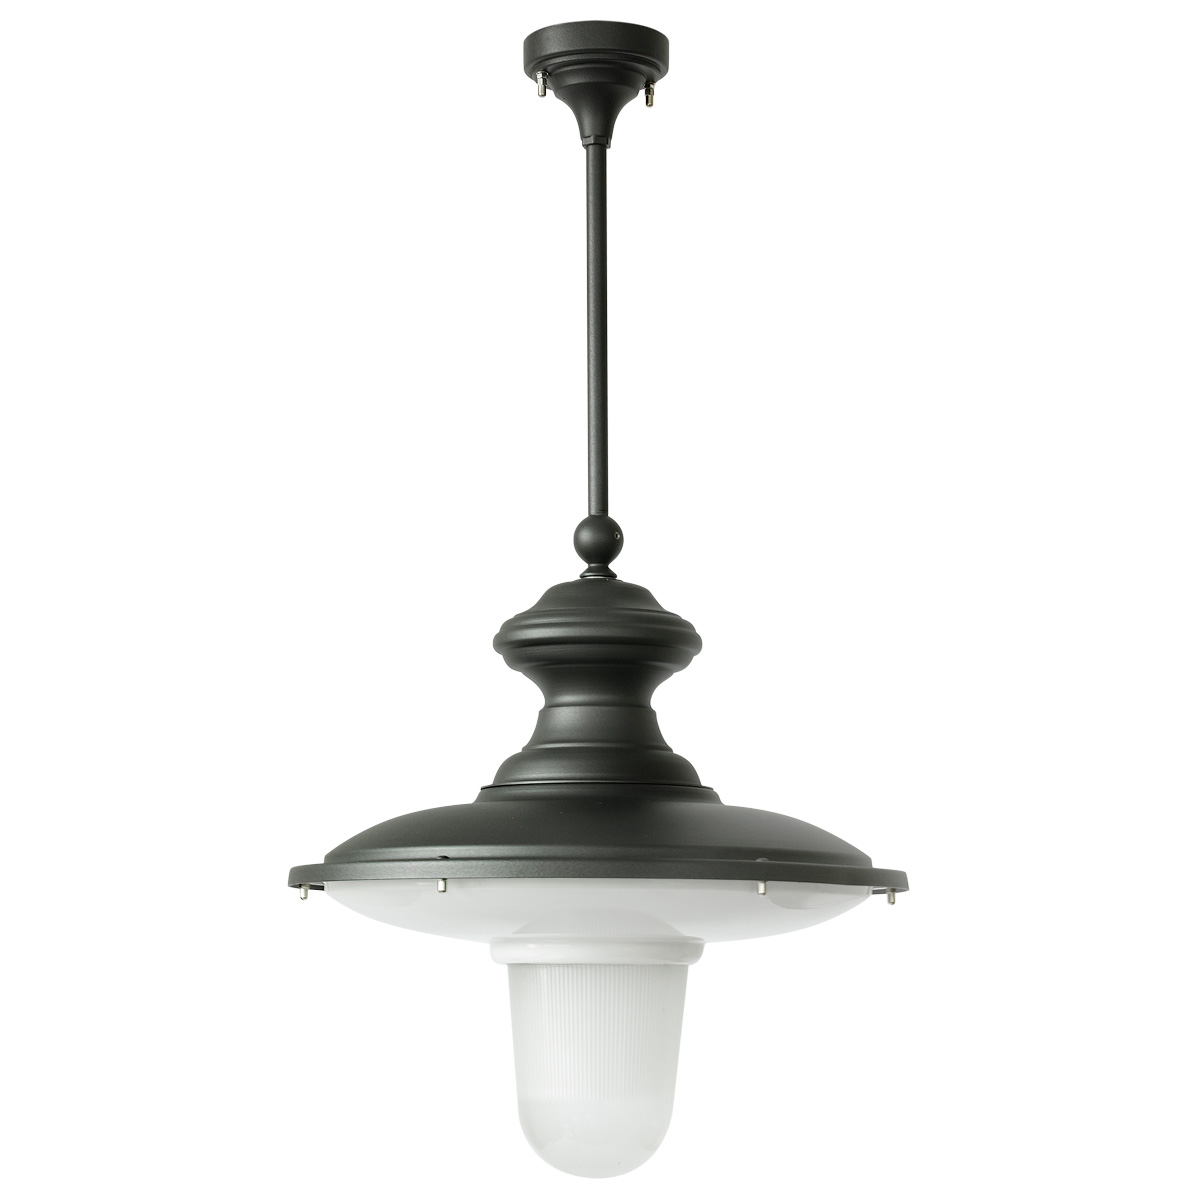 Deckenlampe Industrial Industrial Style Ceiling Lamp For Outdoors From Italy Terra Lumi